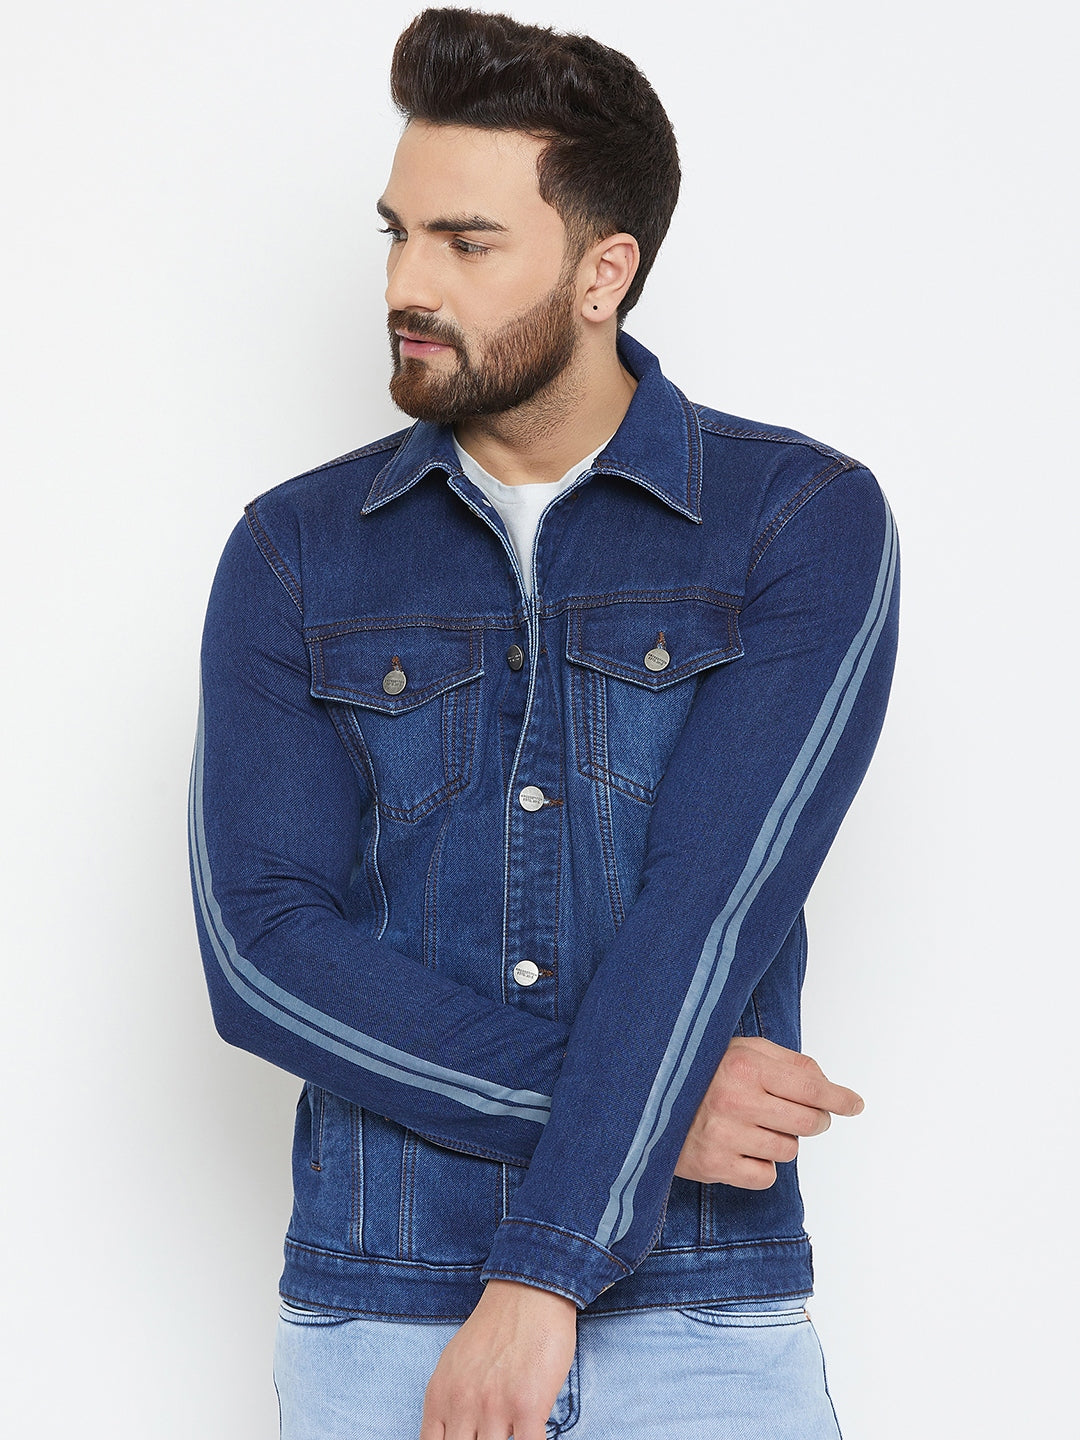 KROSSSTITCH Men's Full Sleeves Denim Jacket with Button Closure| with Stripe Trim Detail on Sleeves|Dark Blue